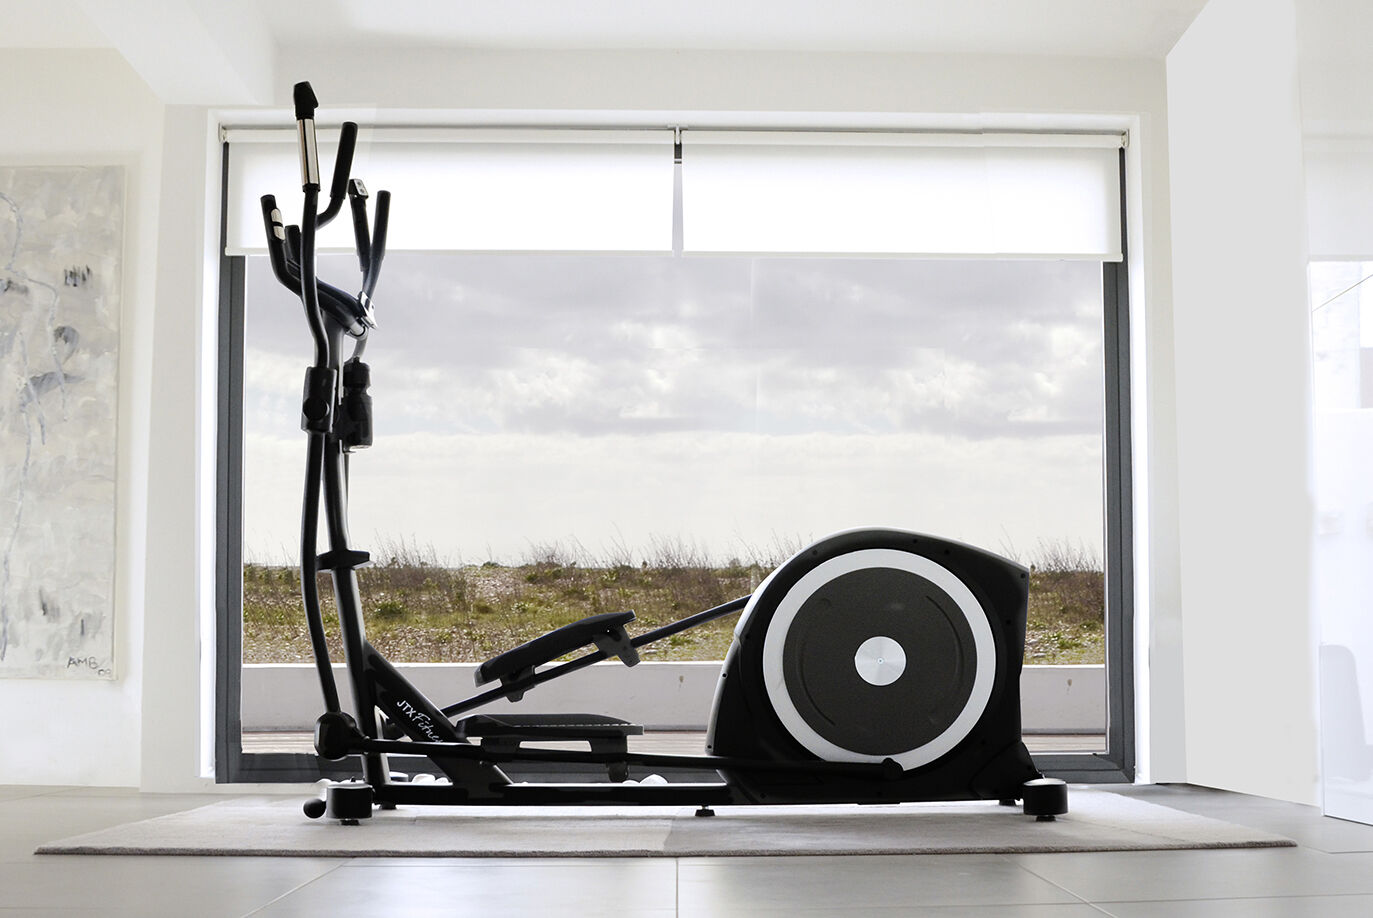 JTX Zenith Commercial Cross Trainer